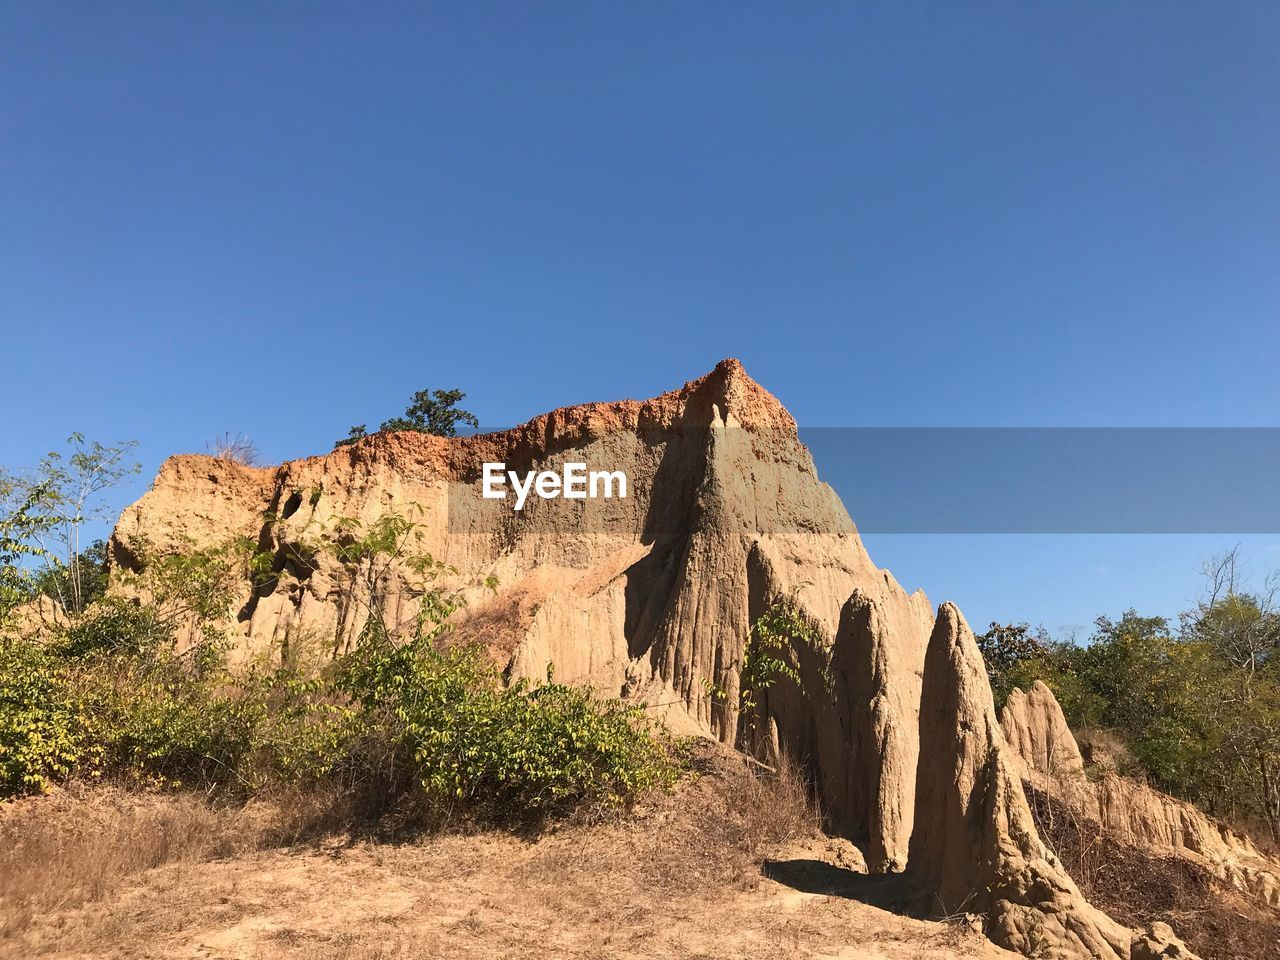 PANORAMIC VIEW OF MOUNTAIN AGAINST CLEAR BLUE SKY